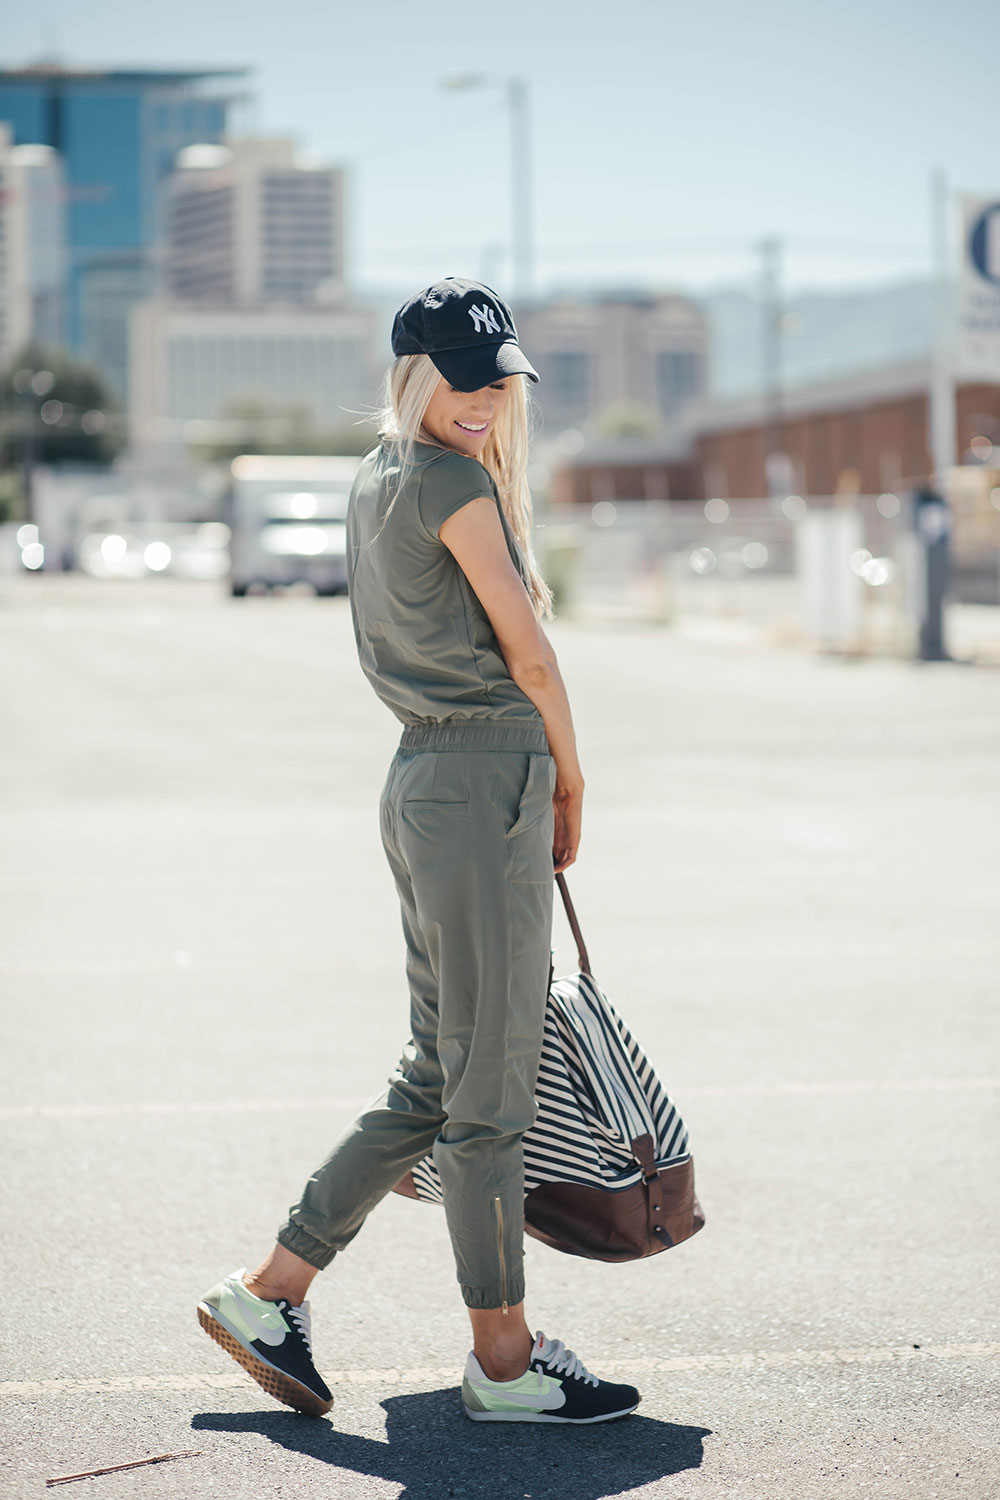 af3450ae64b Little-Miss-Fearless how-to-wear-a-jumpsuit-4-ways-summer-road-trip ...